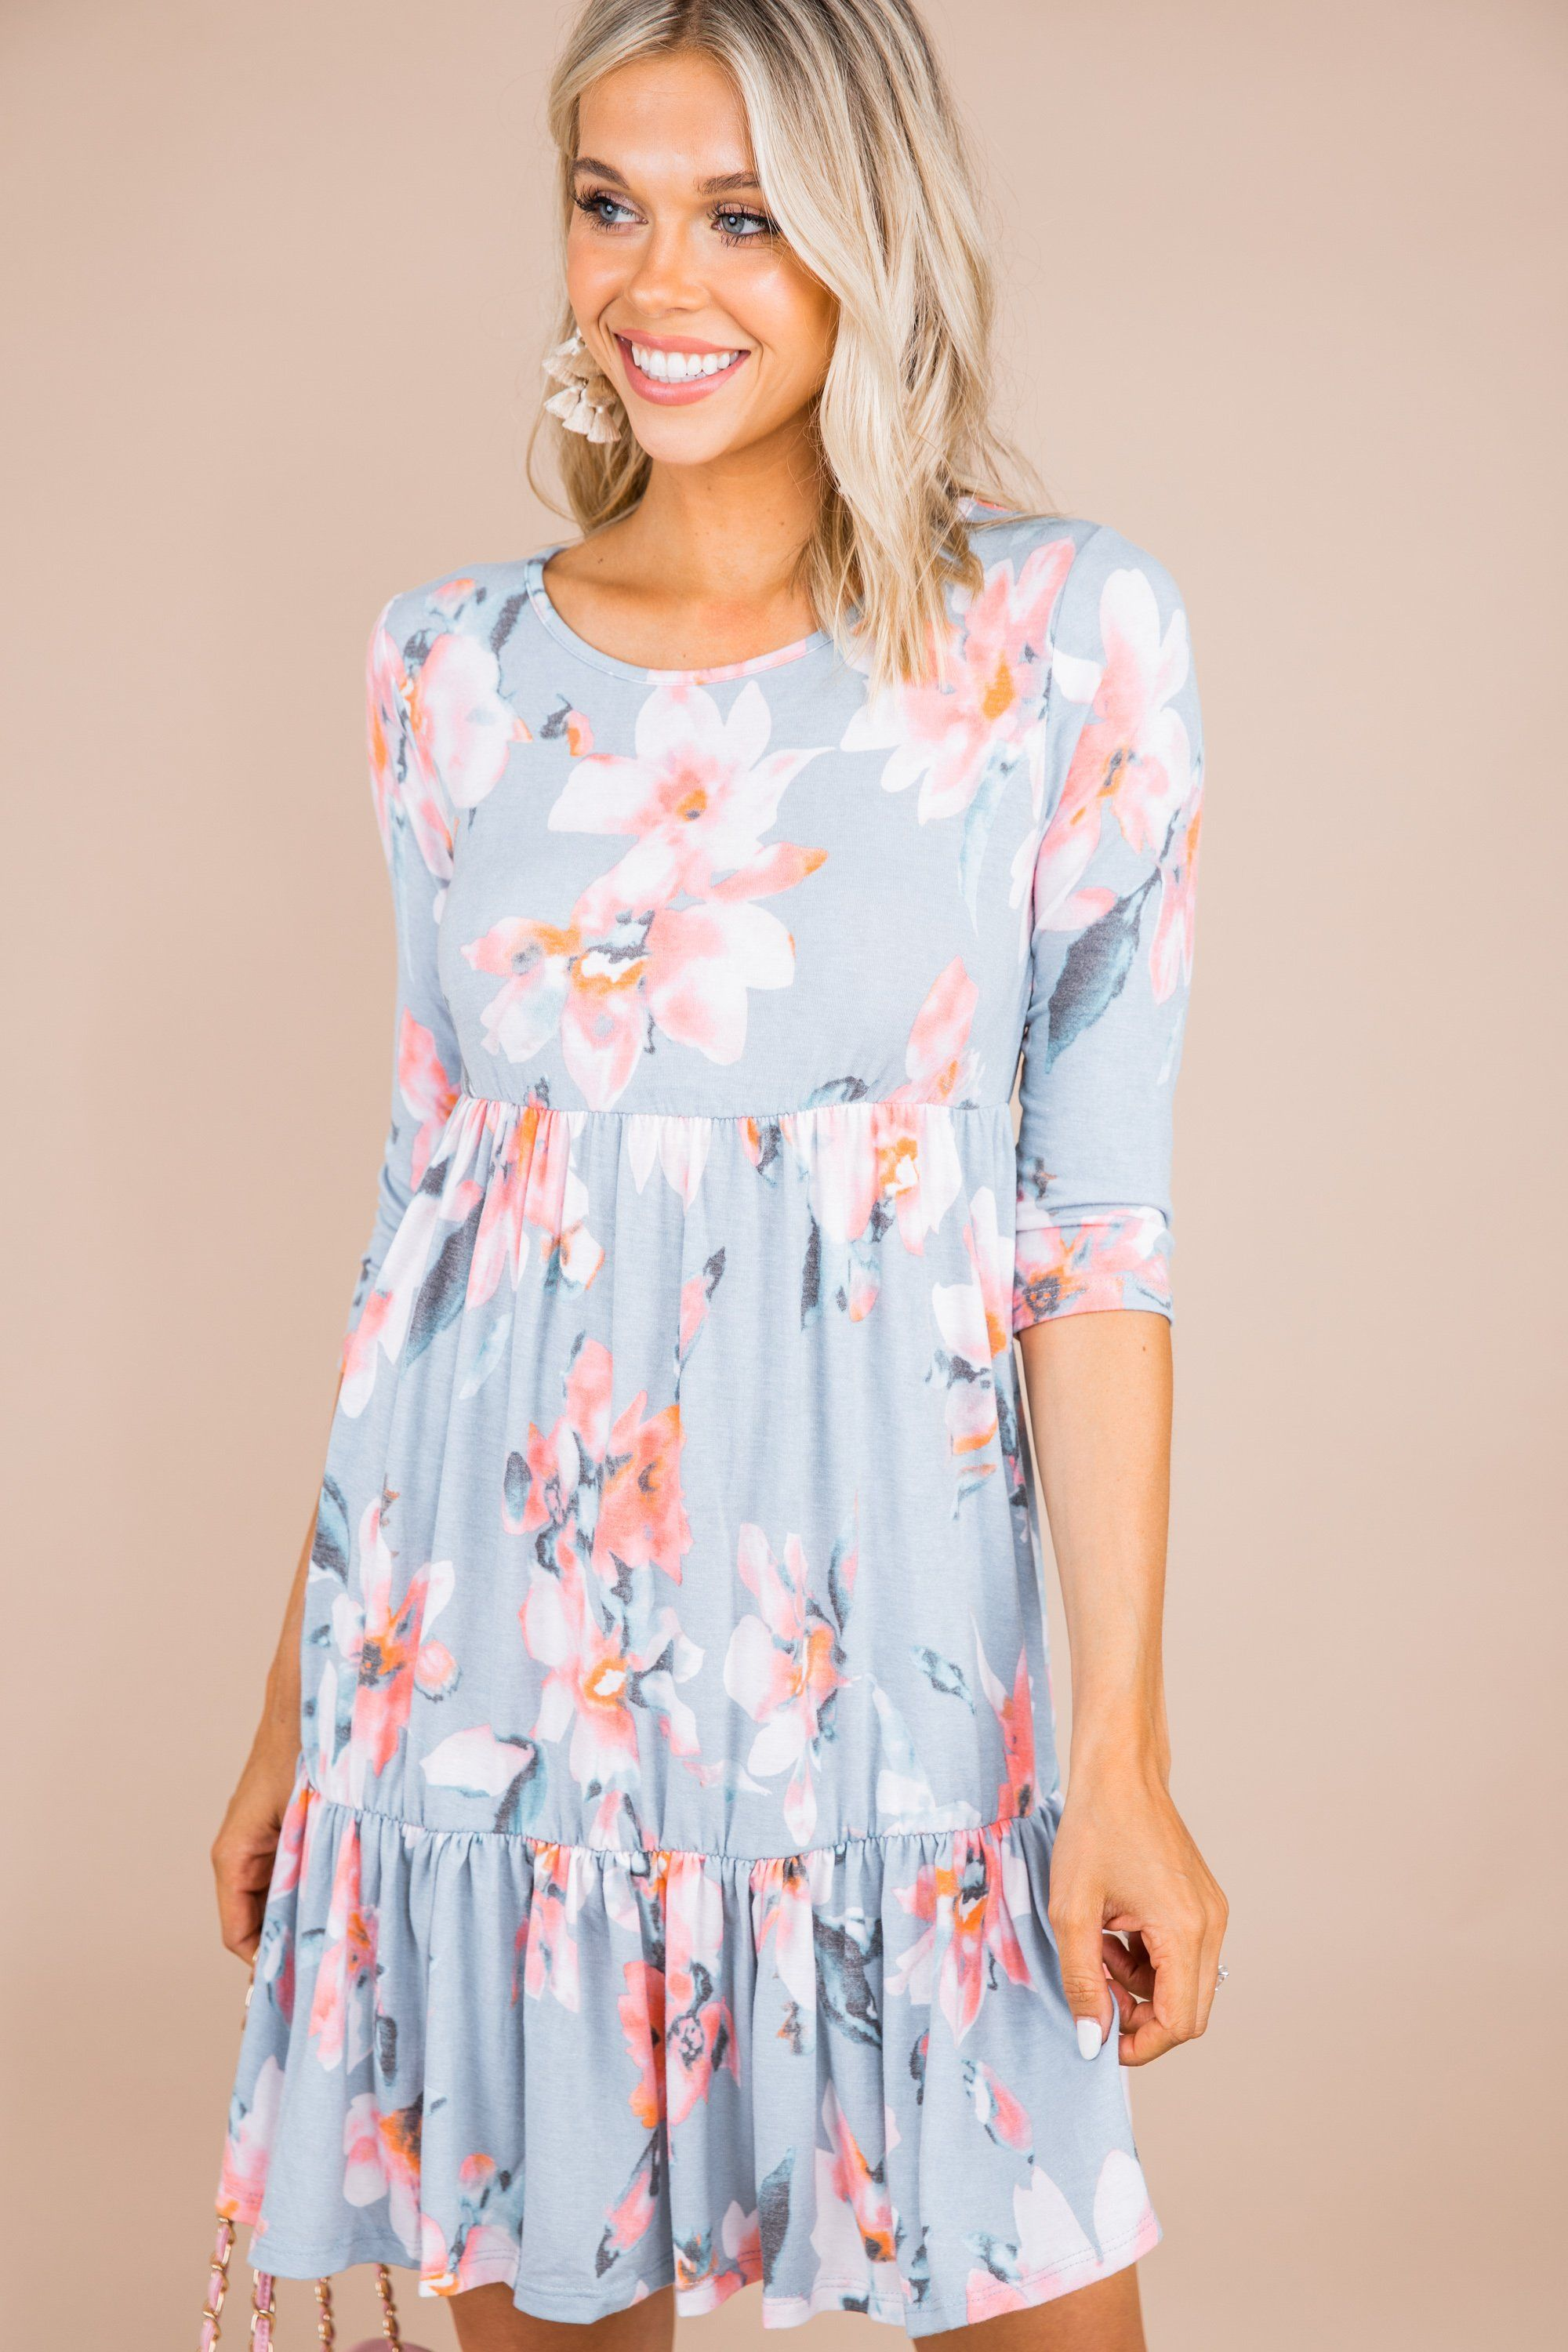 What A Lovely Life Blue 1 2 Sleeve Dress Blue Babydoll Dress Babydoll Dress Dresses [ 3000 x 2000 Pixel ]